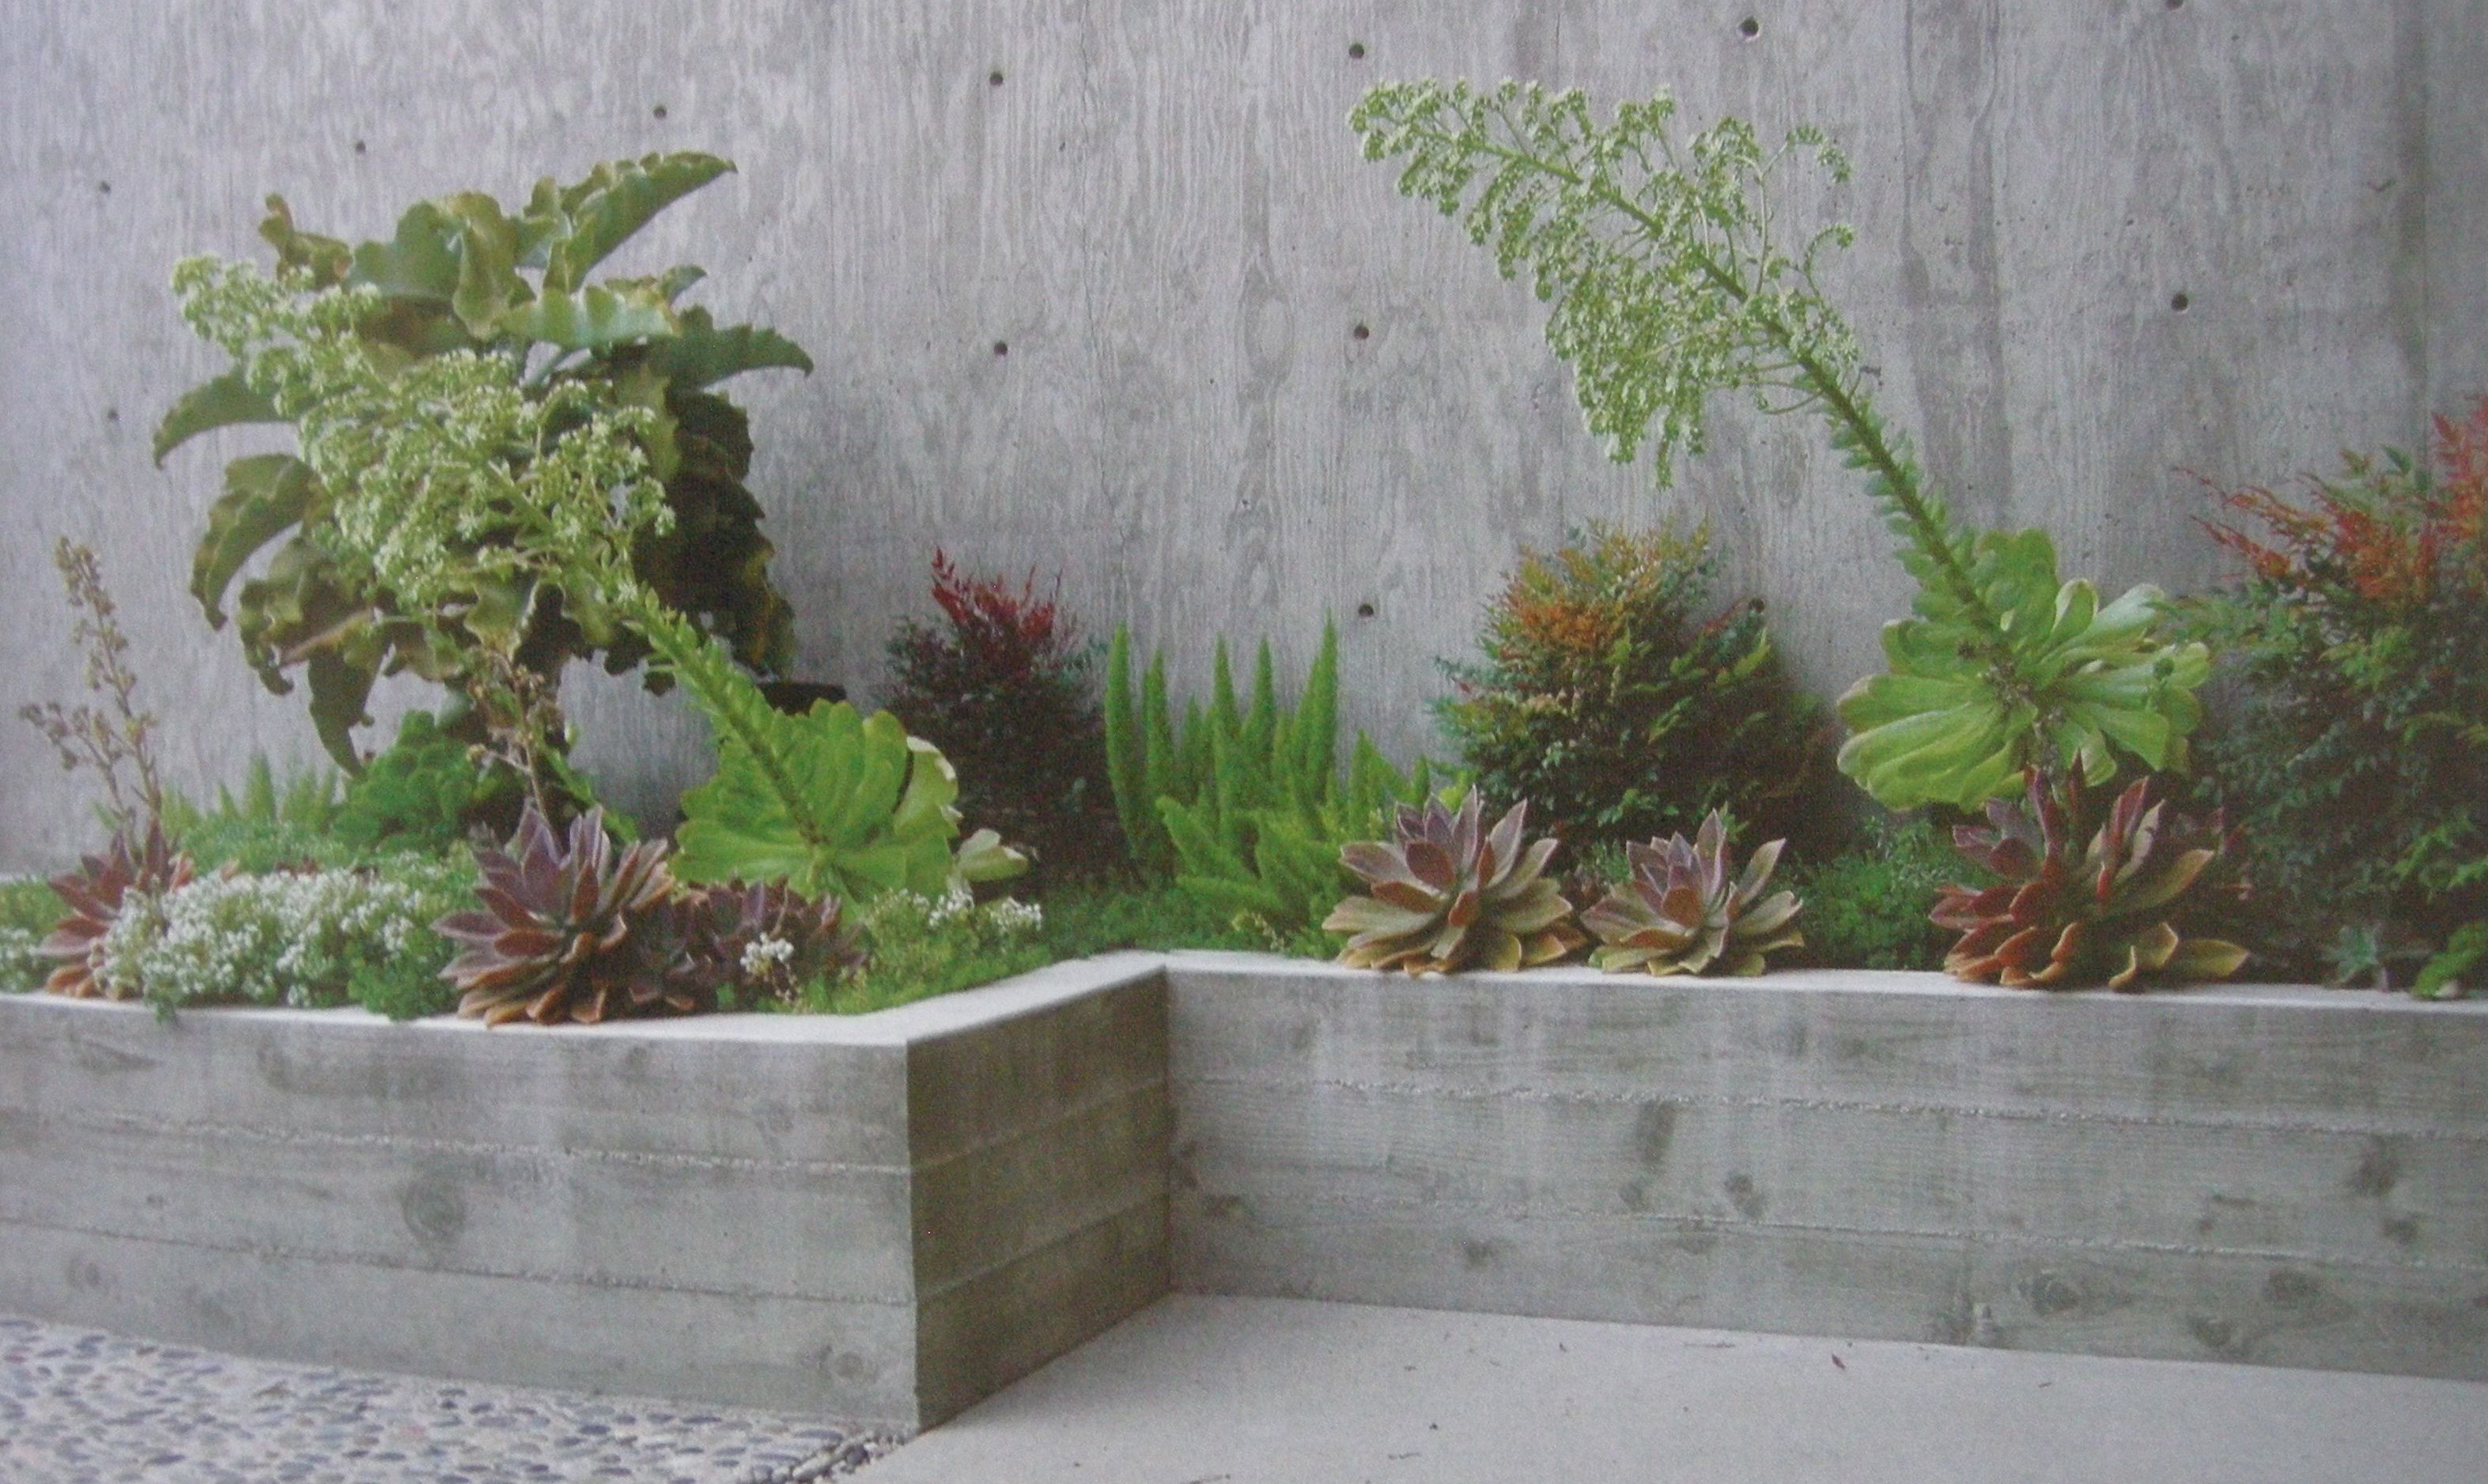 Board Formed Concrete Wall Driveway Succulent Landscaping Front Yard Landscaping Retaining Walls Concrete Planters